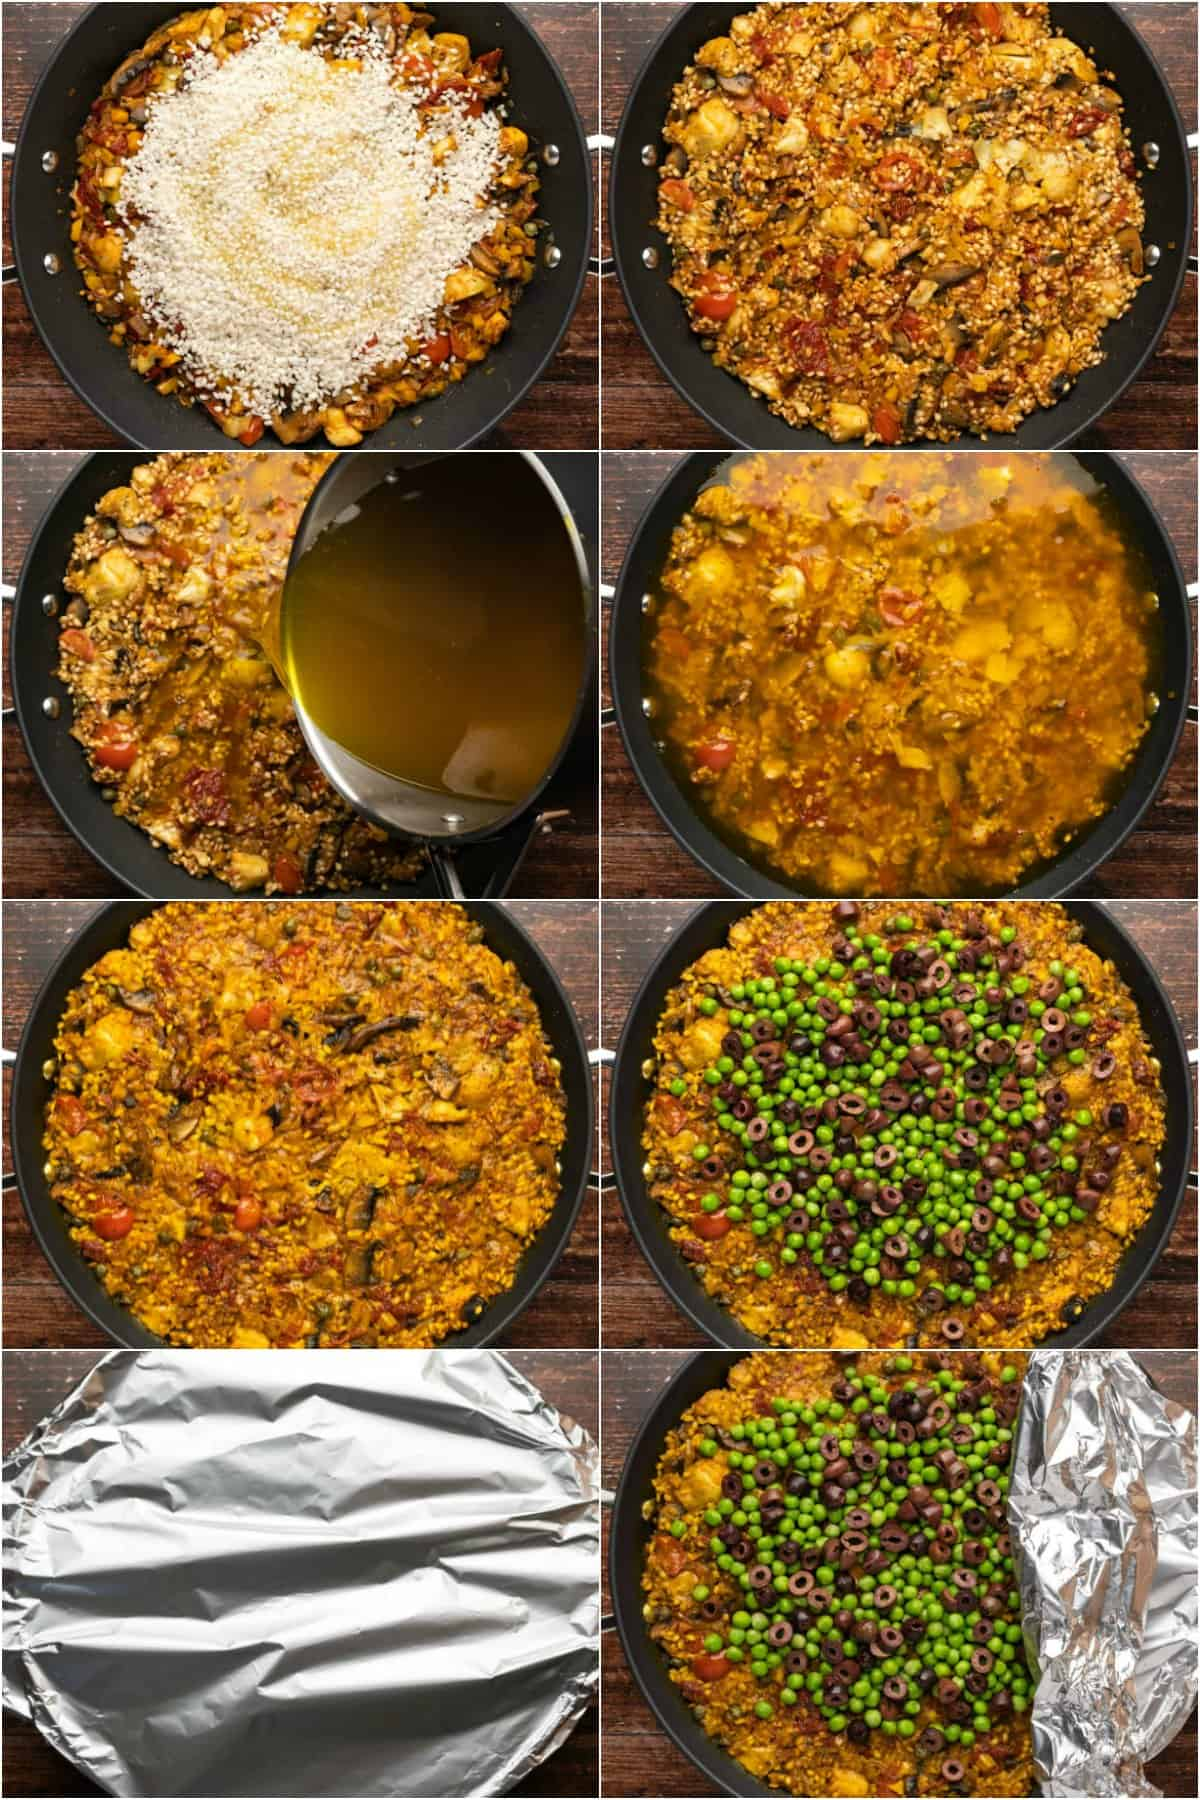 Step by step process photo collage of making vegetarian paella.